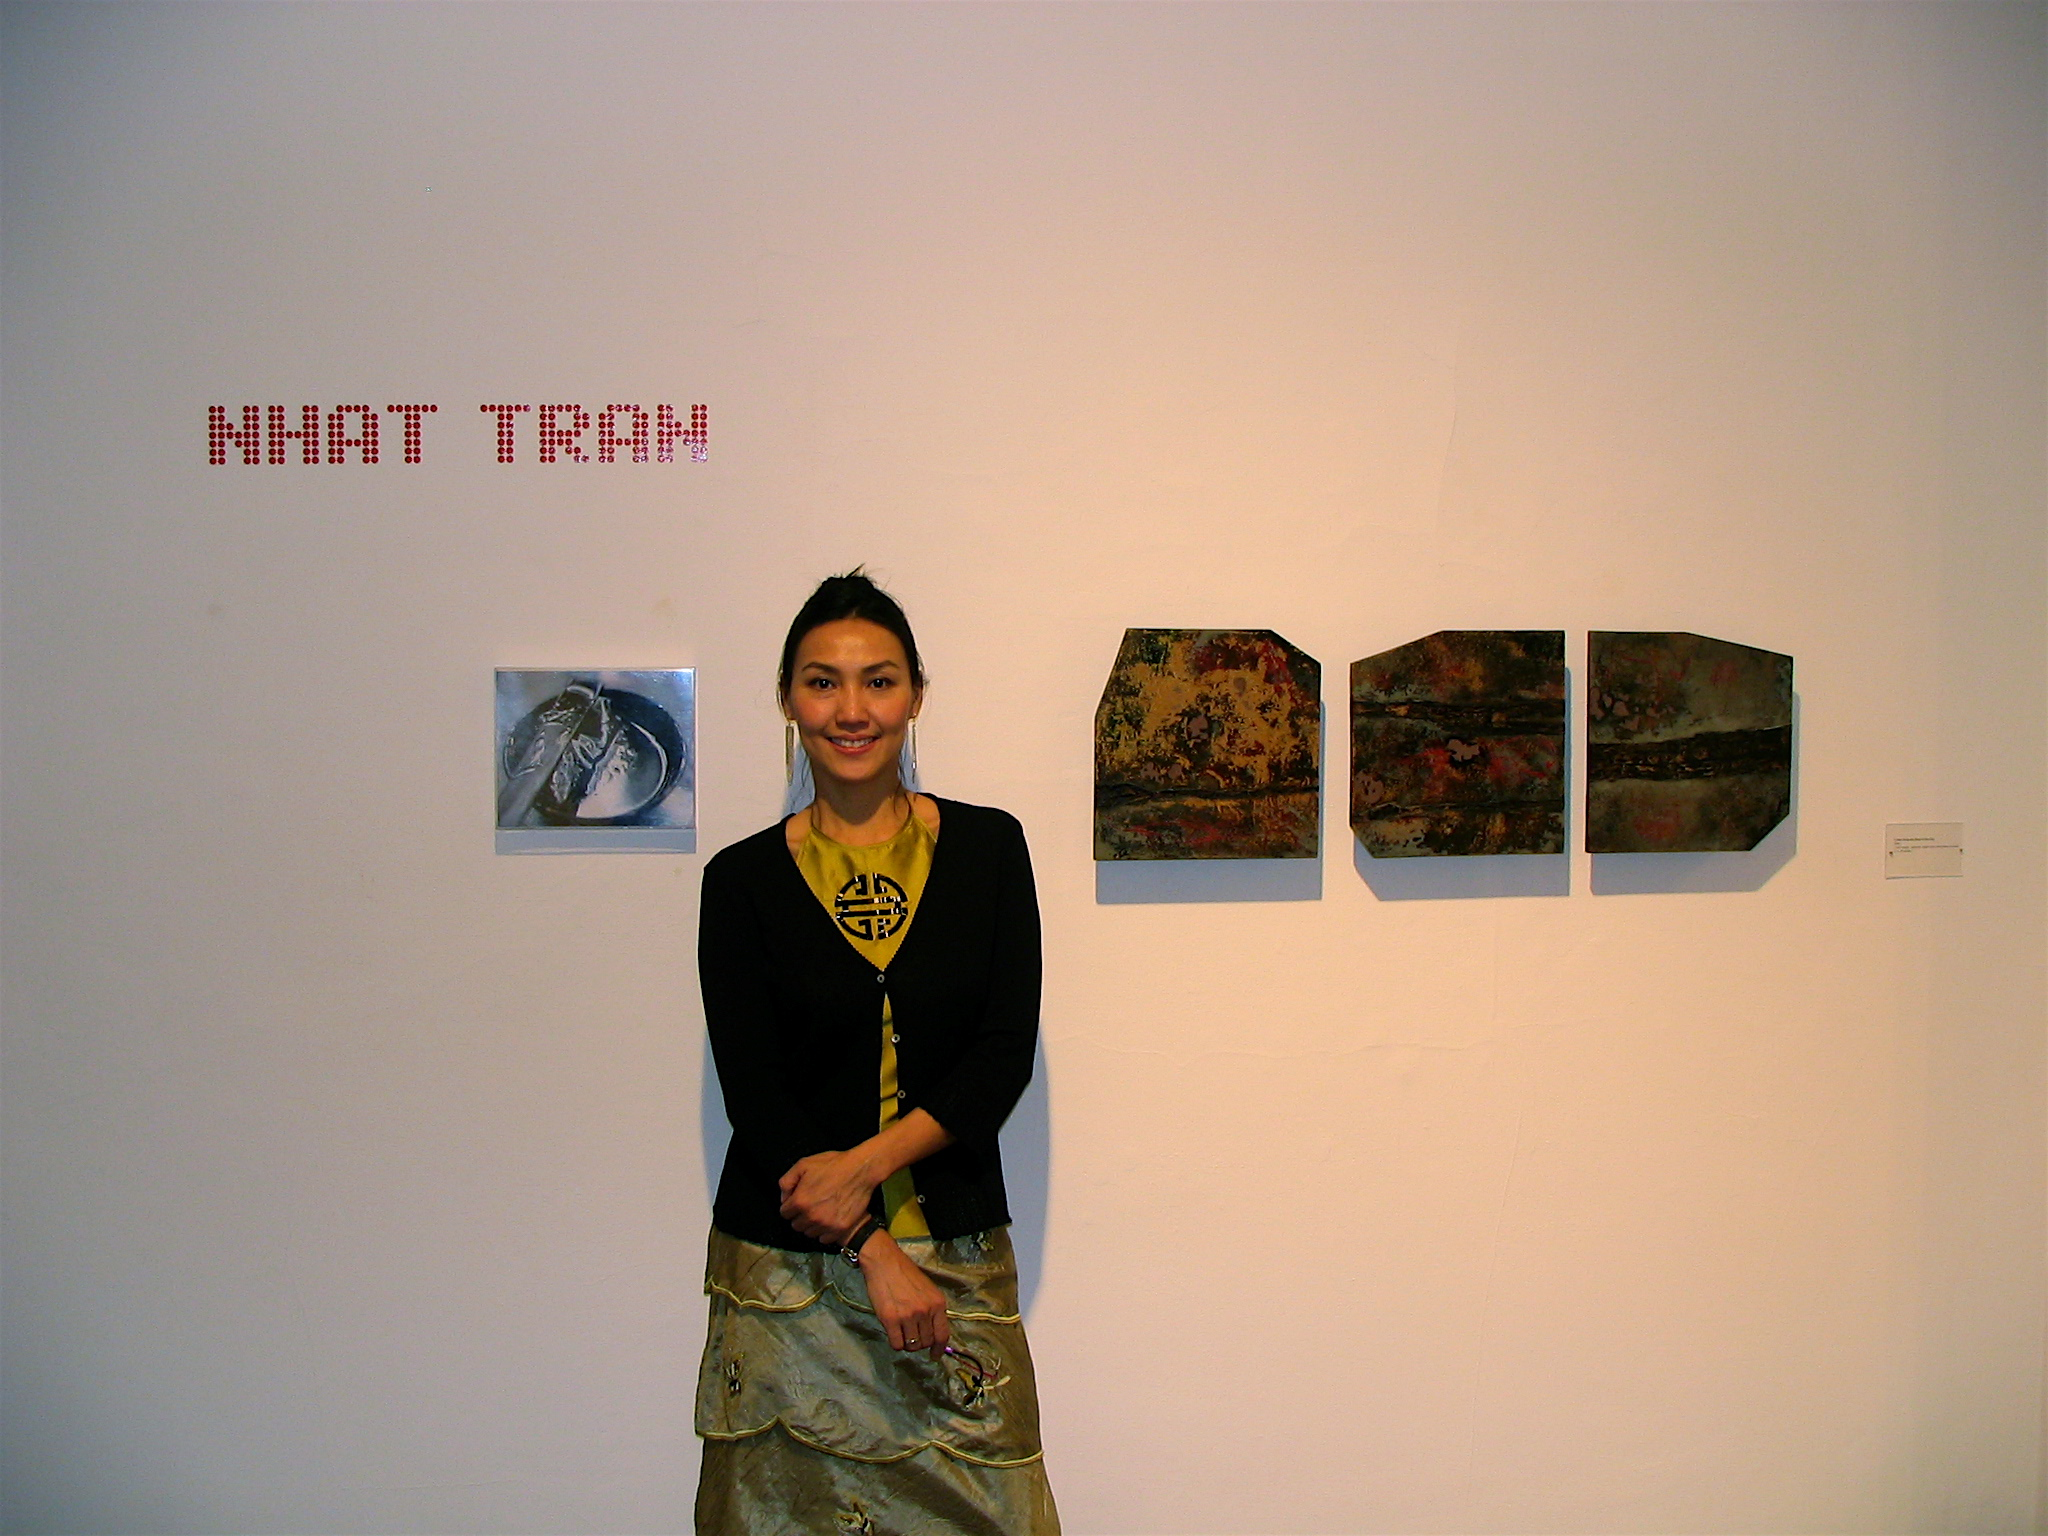 One person Show, 2005